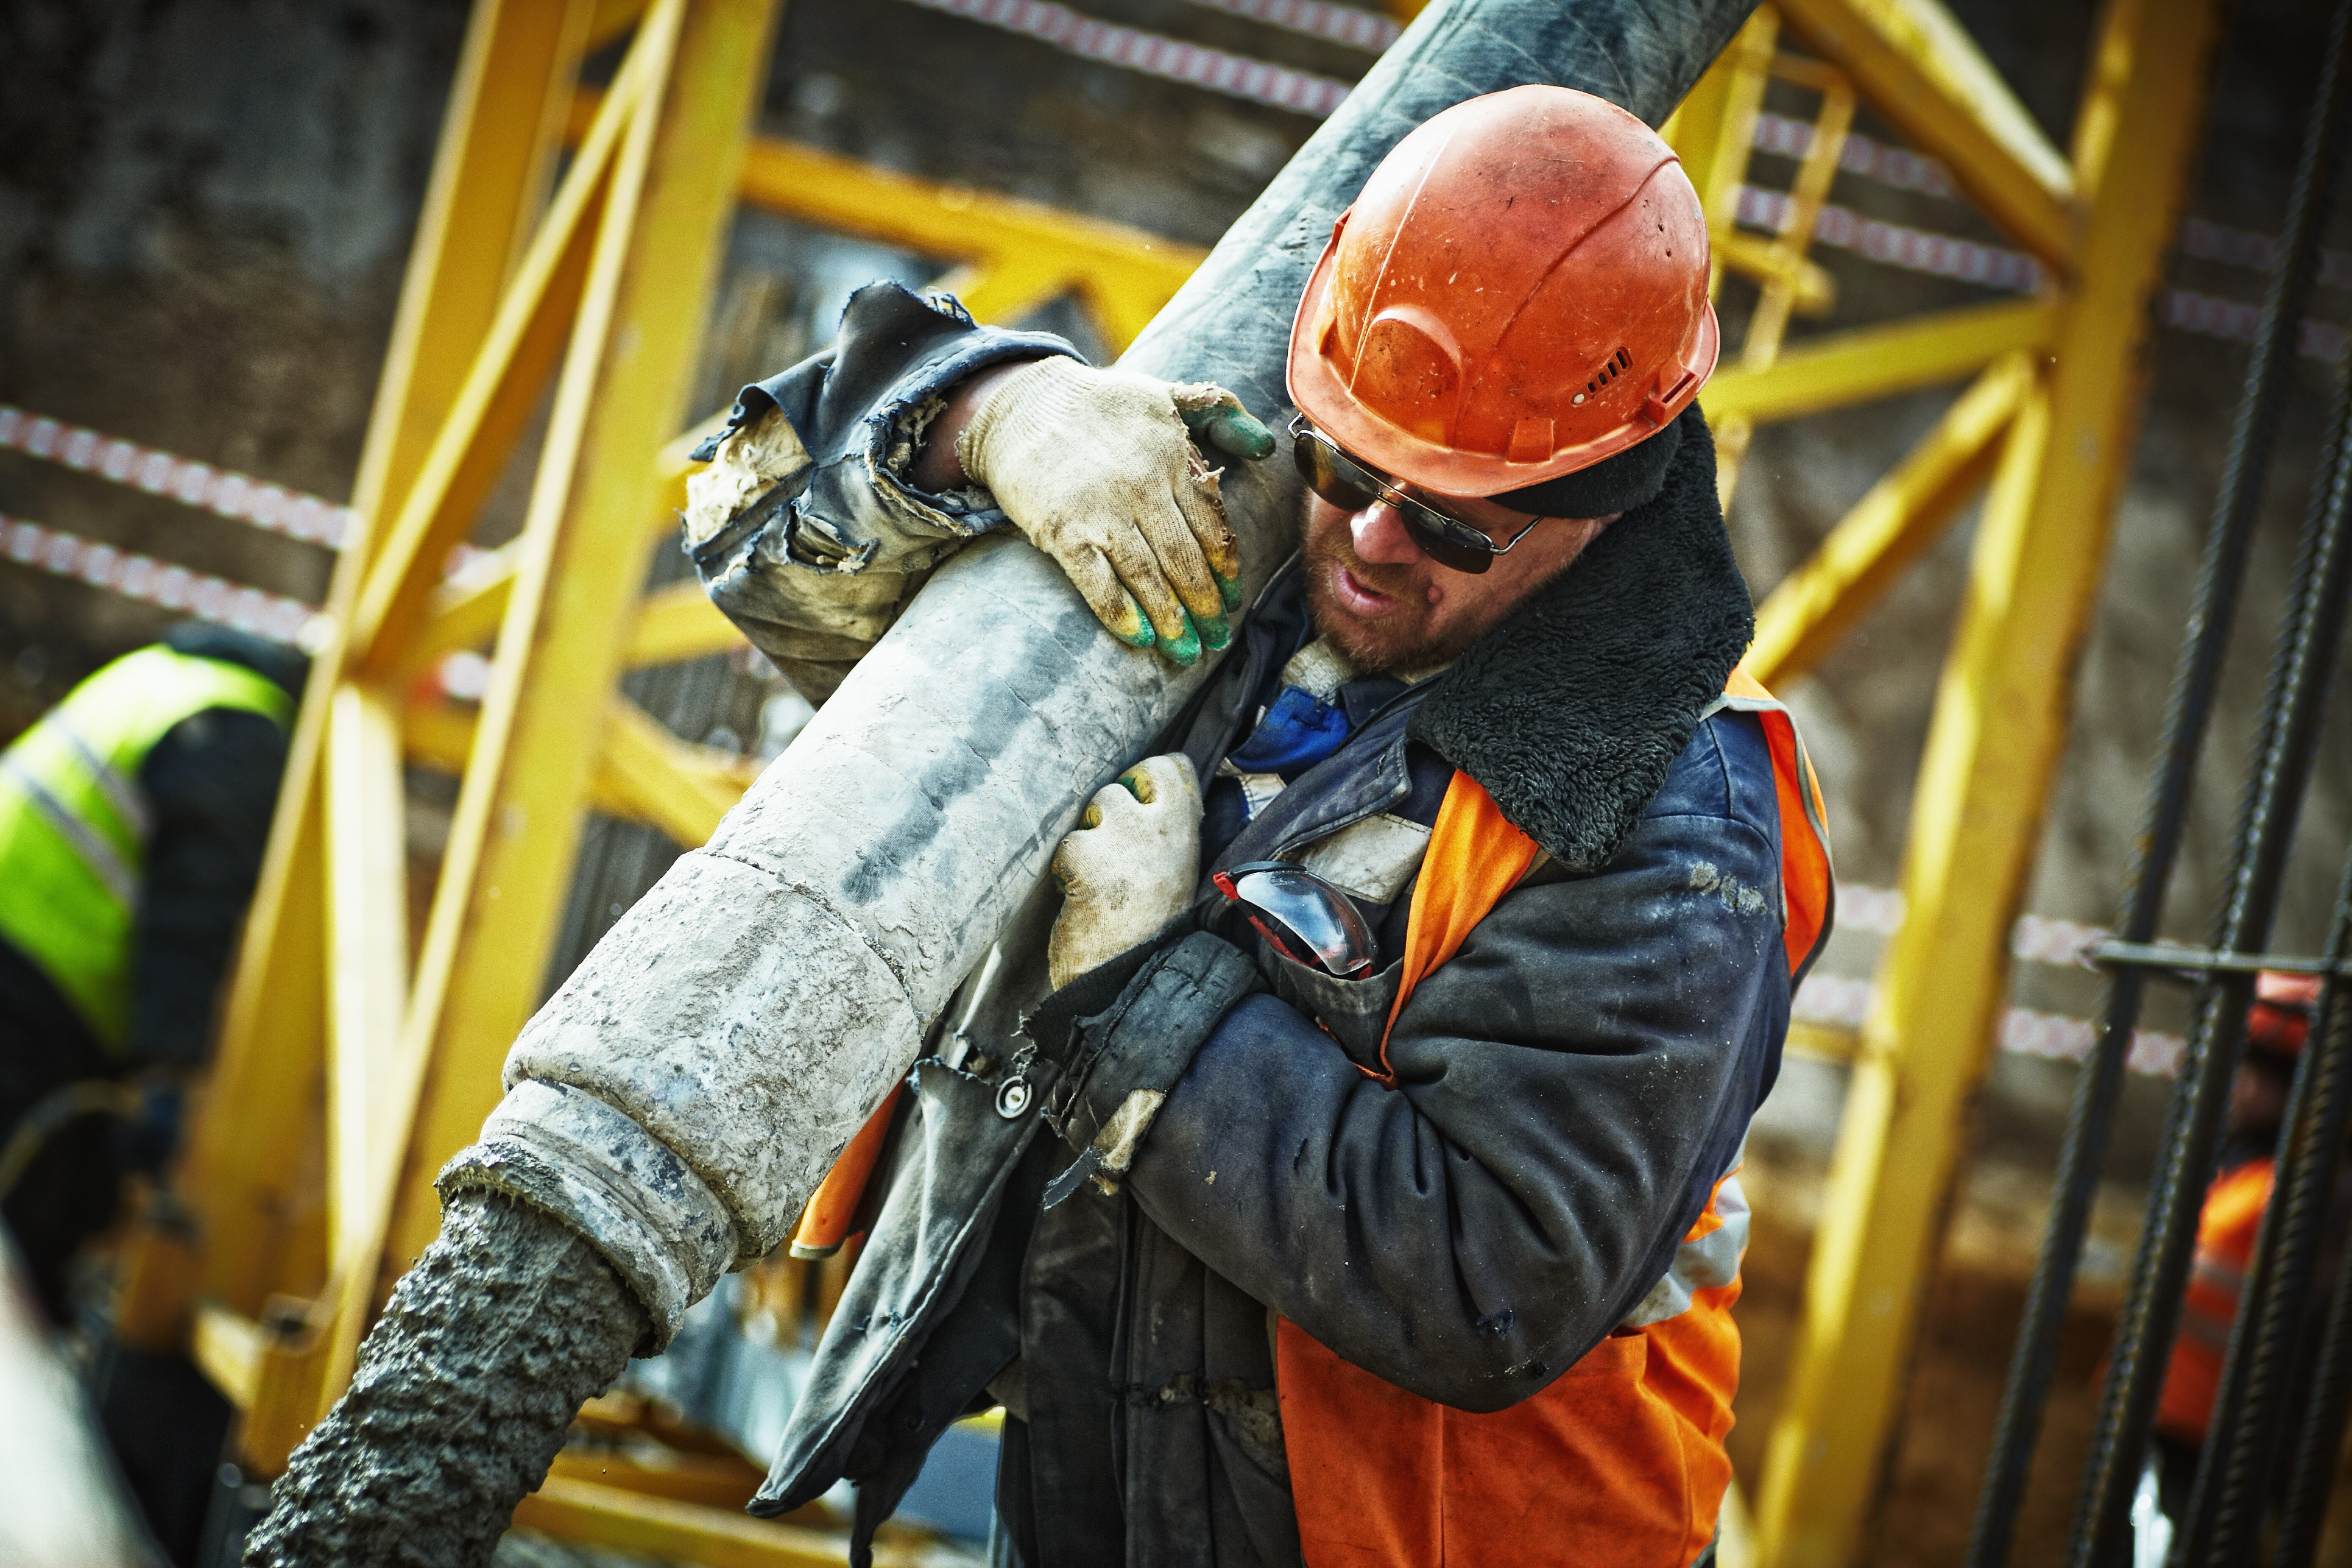 Predictive_Solutions_Value of Safety Leading Indicator Metrics_Workplace_Safety